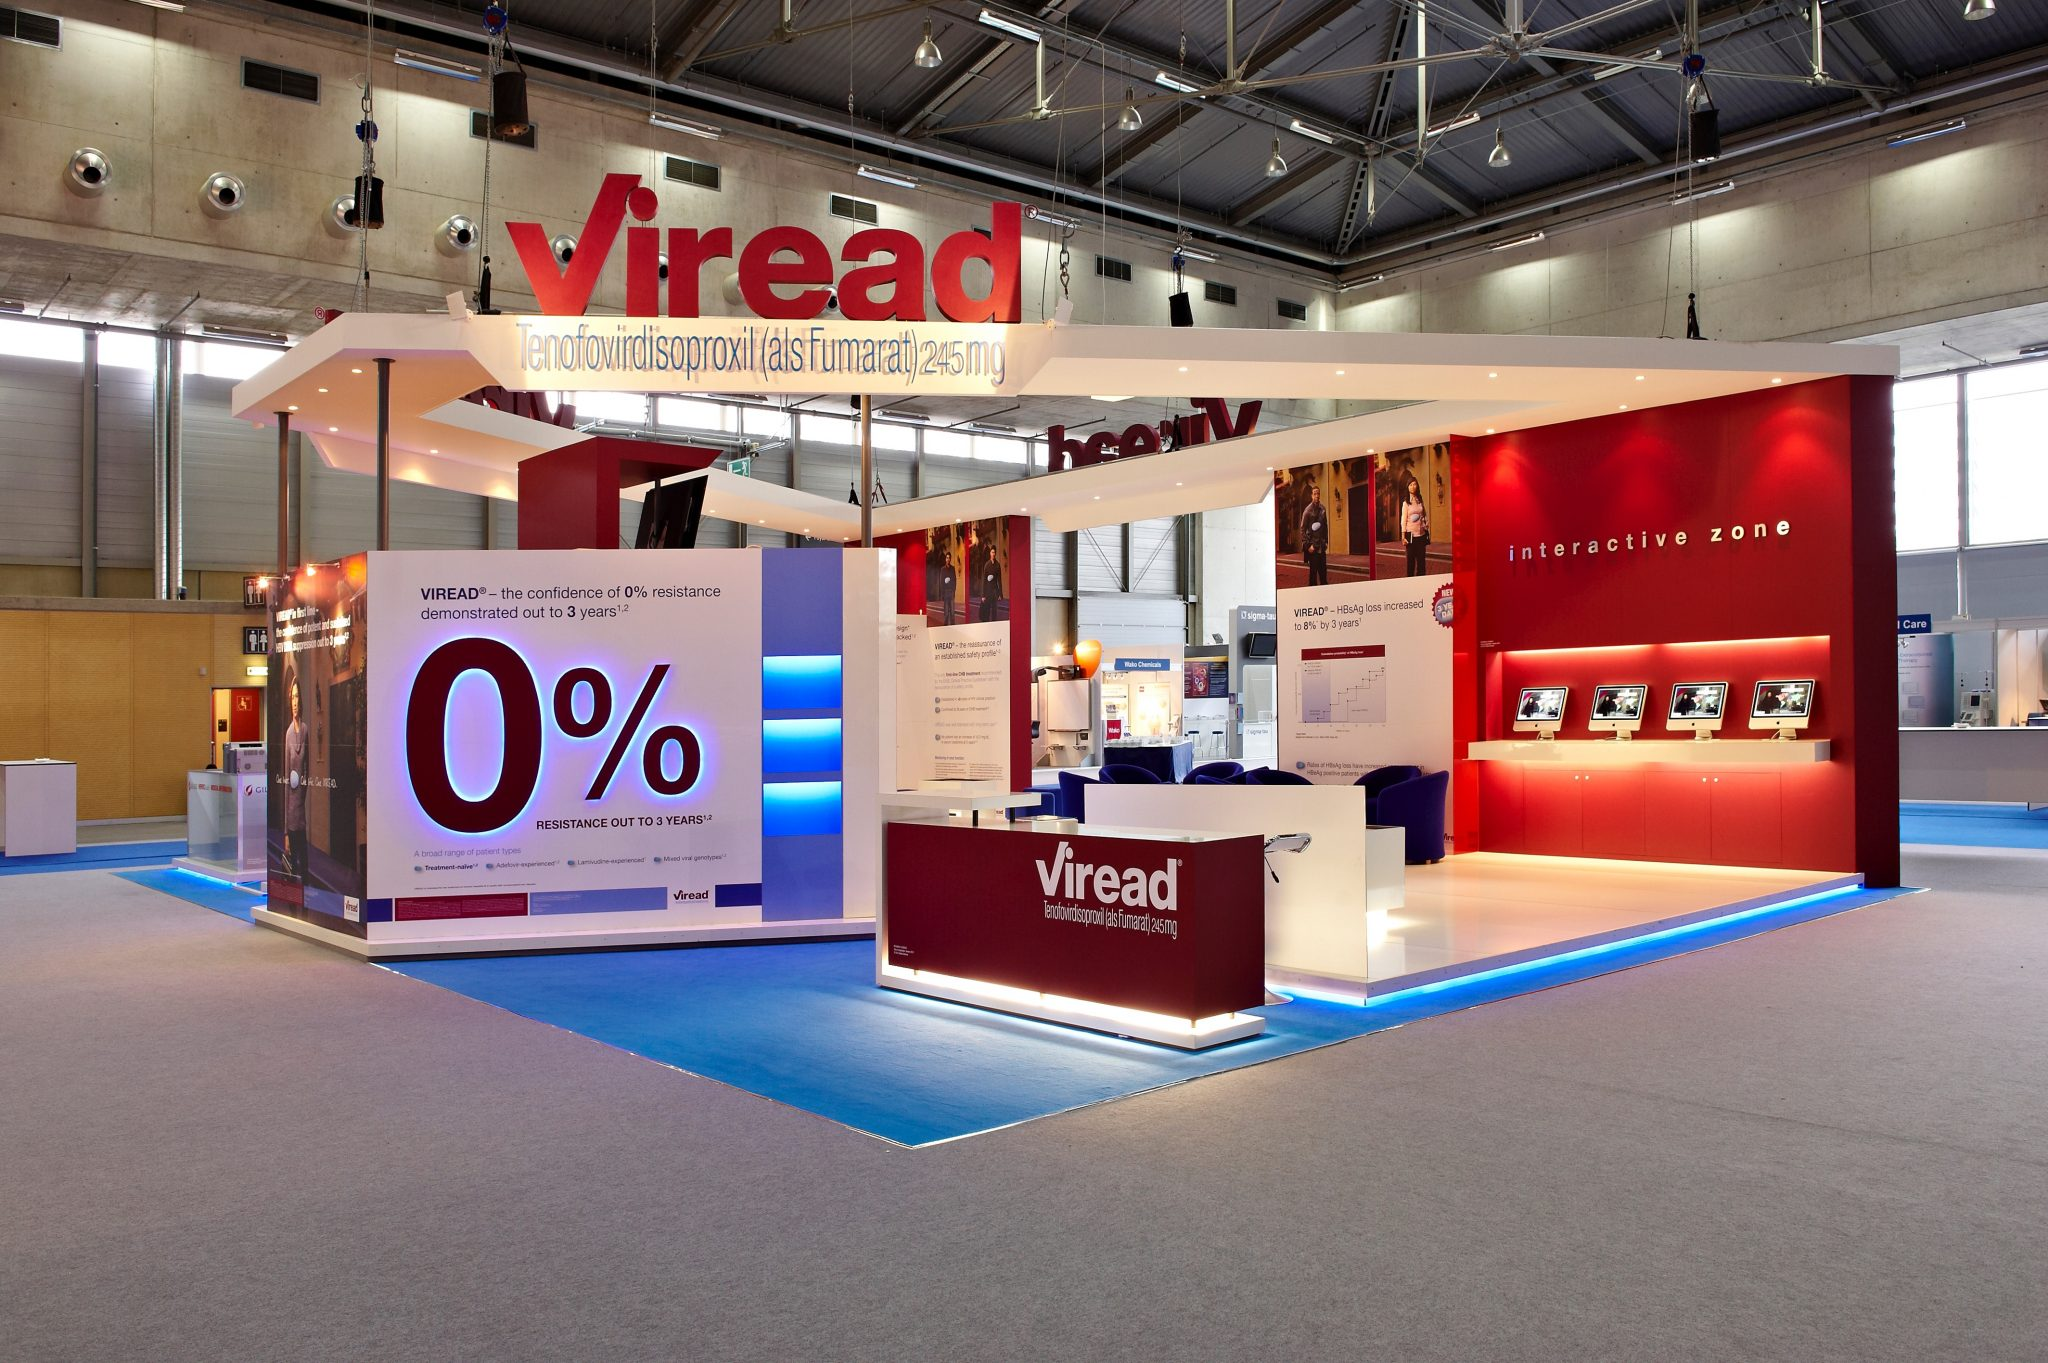 Viread's exhibition stand at EASL